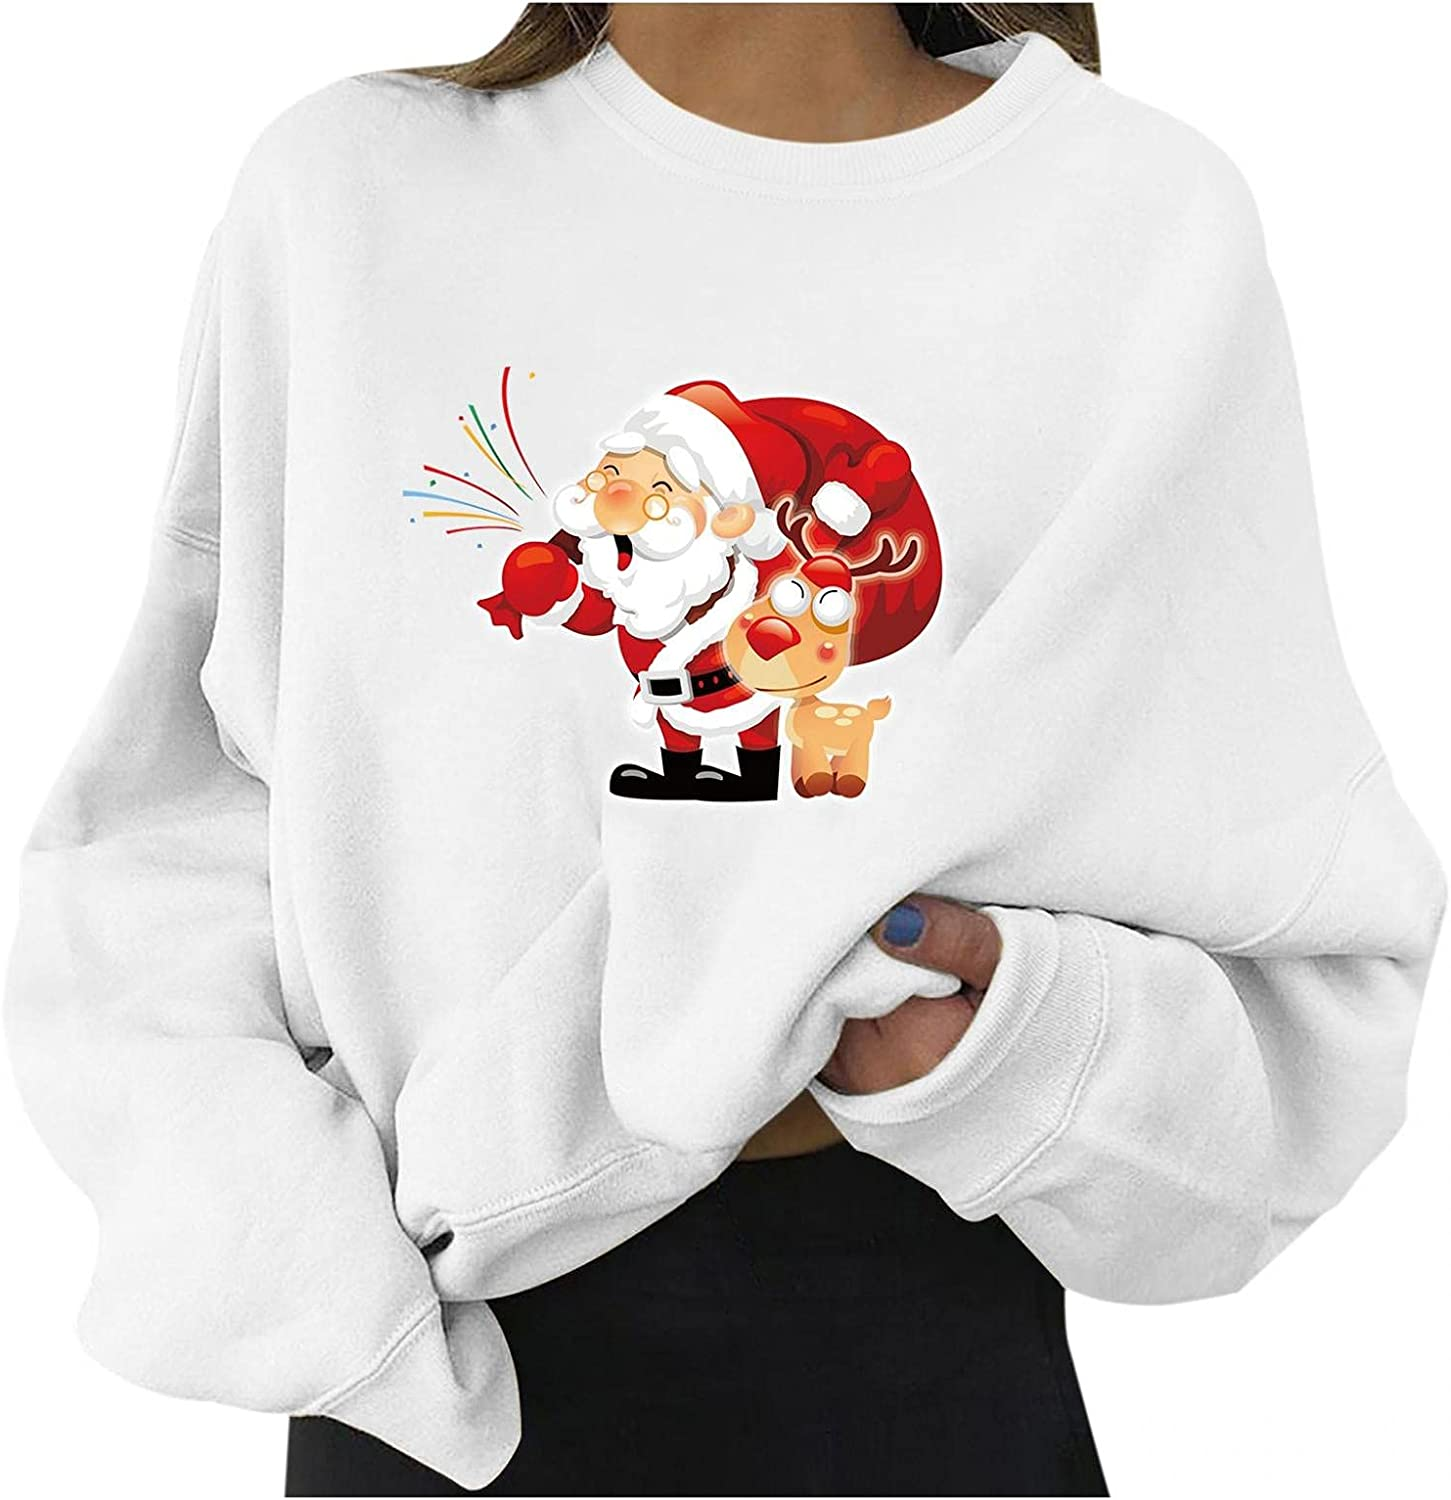 CHYOUU Sweatshirts for Women,Christmas Sweater Crew Neck Pullover Snowmen Reindeer Themed for Office Holiday Sweater Party